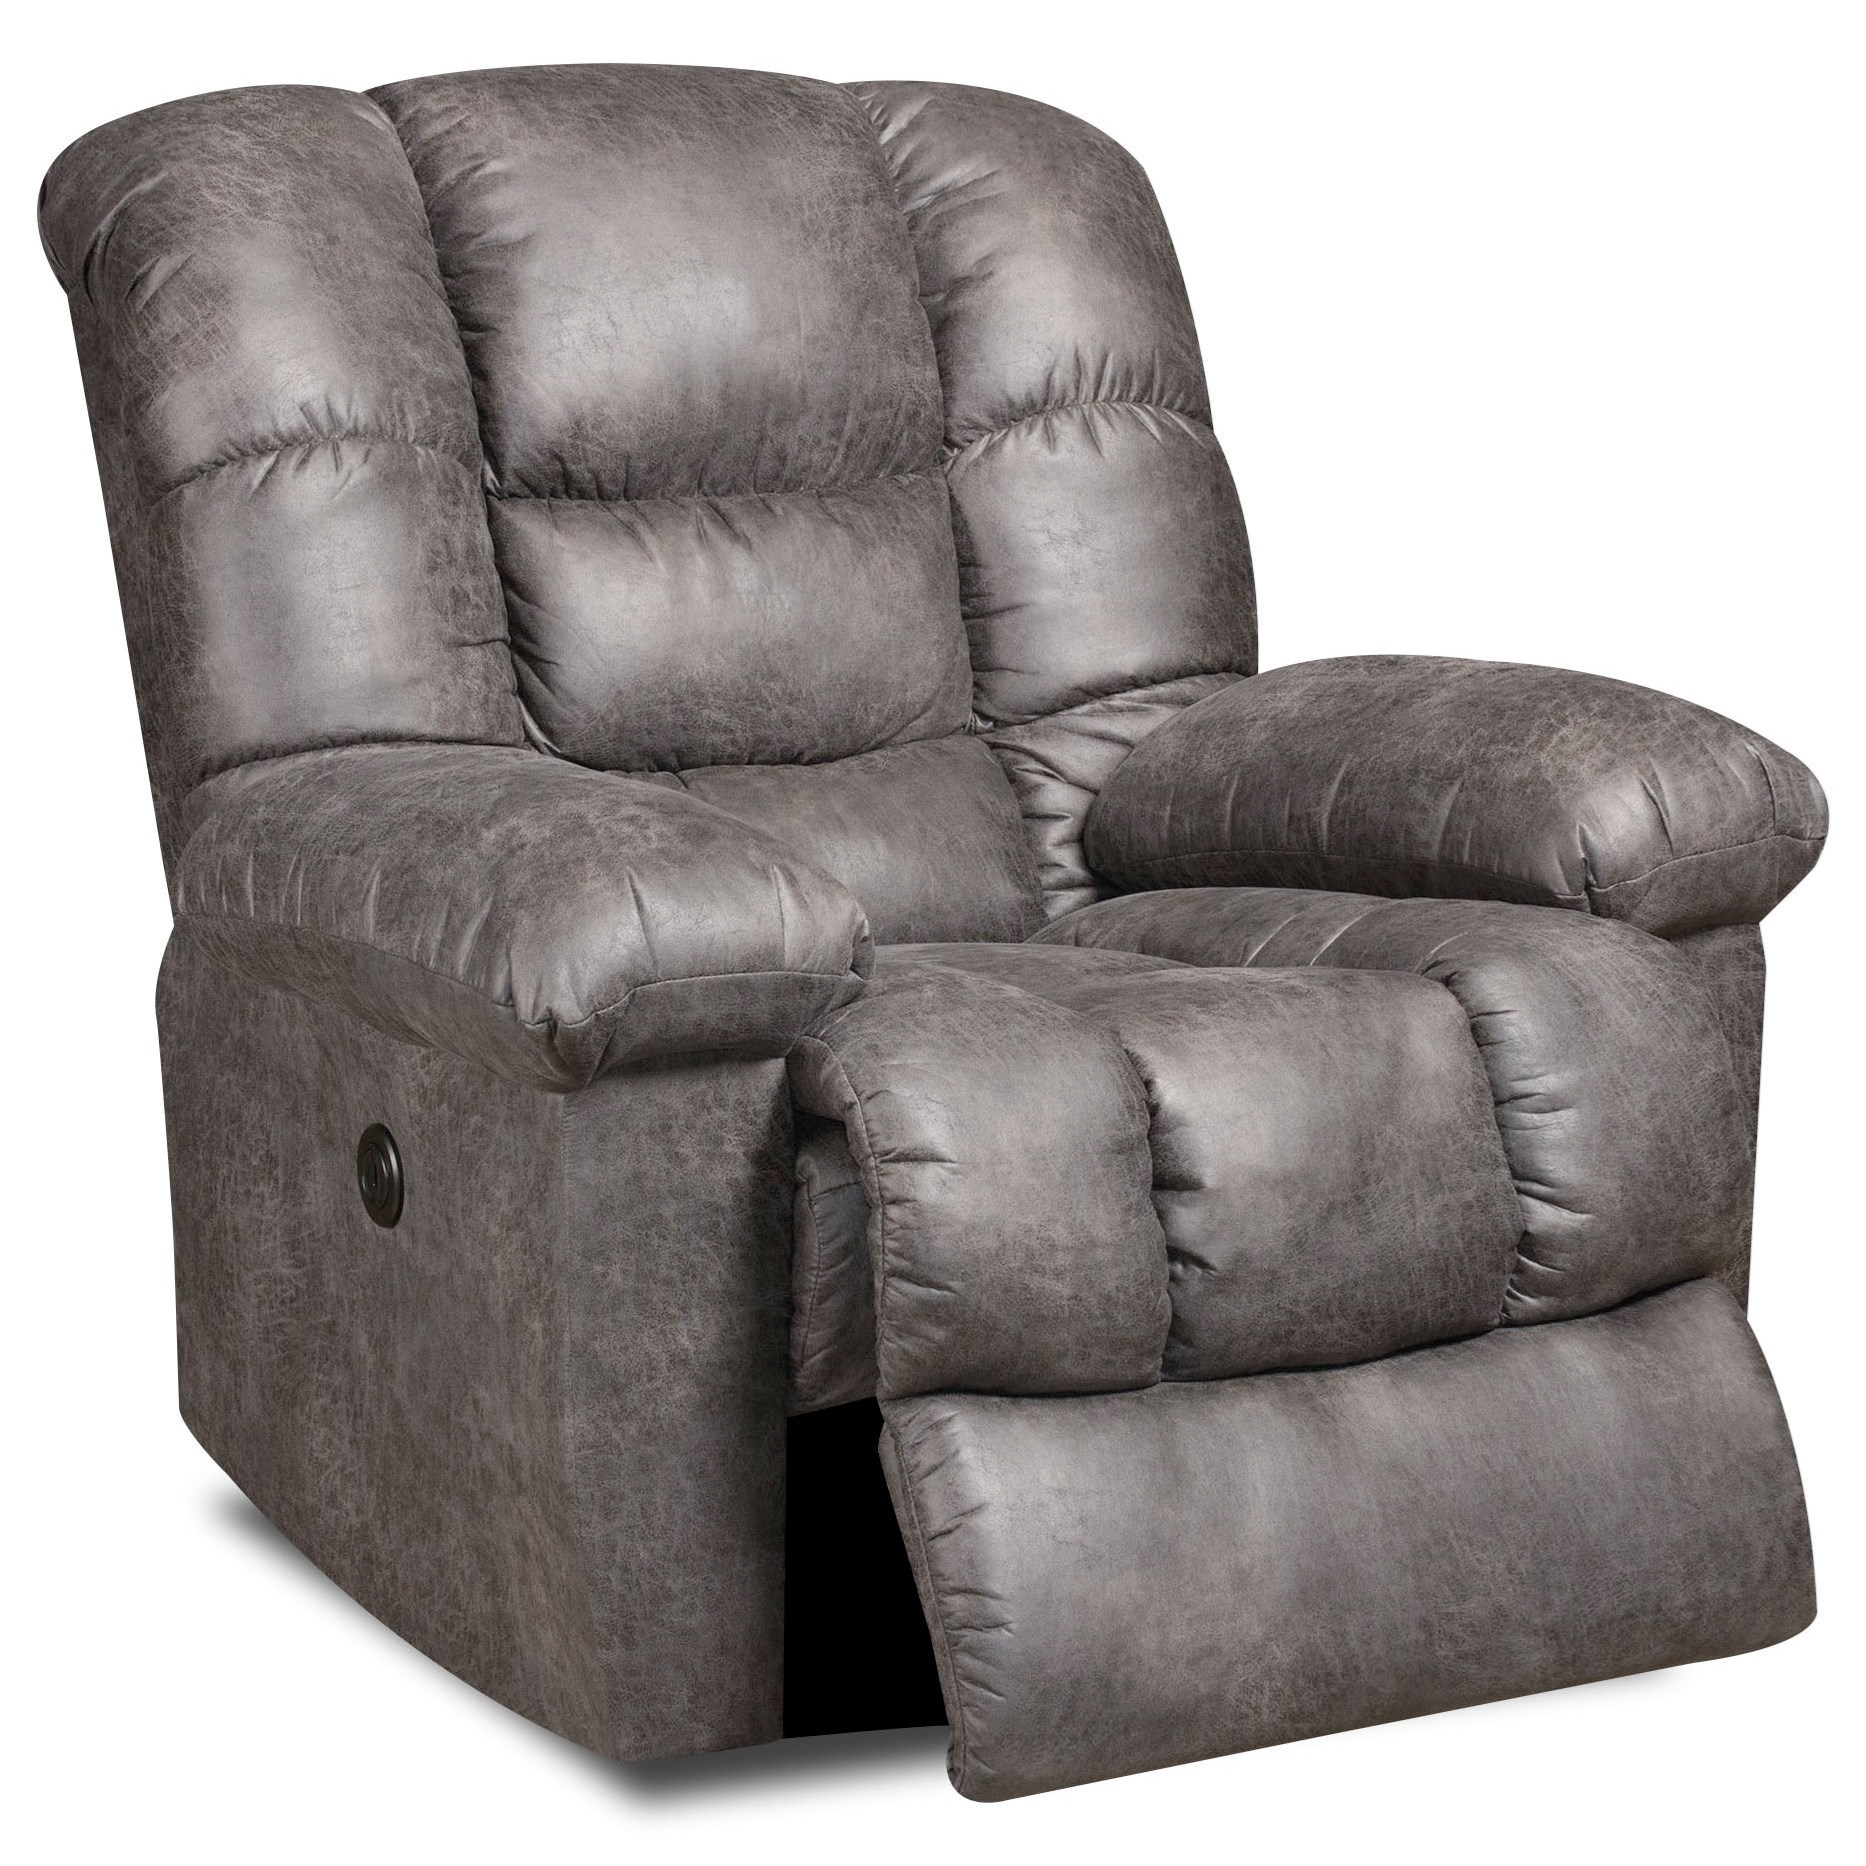 boy la height with morrisonpower threshold trim morrison xr width reclina item petite recline rocker products recliner charging power z usb recliners